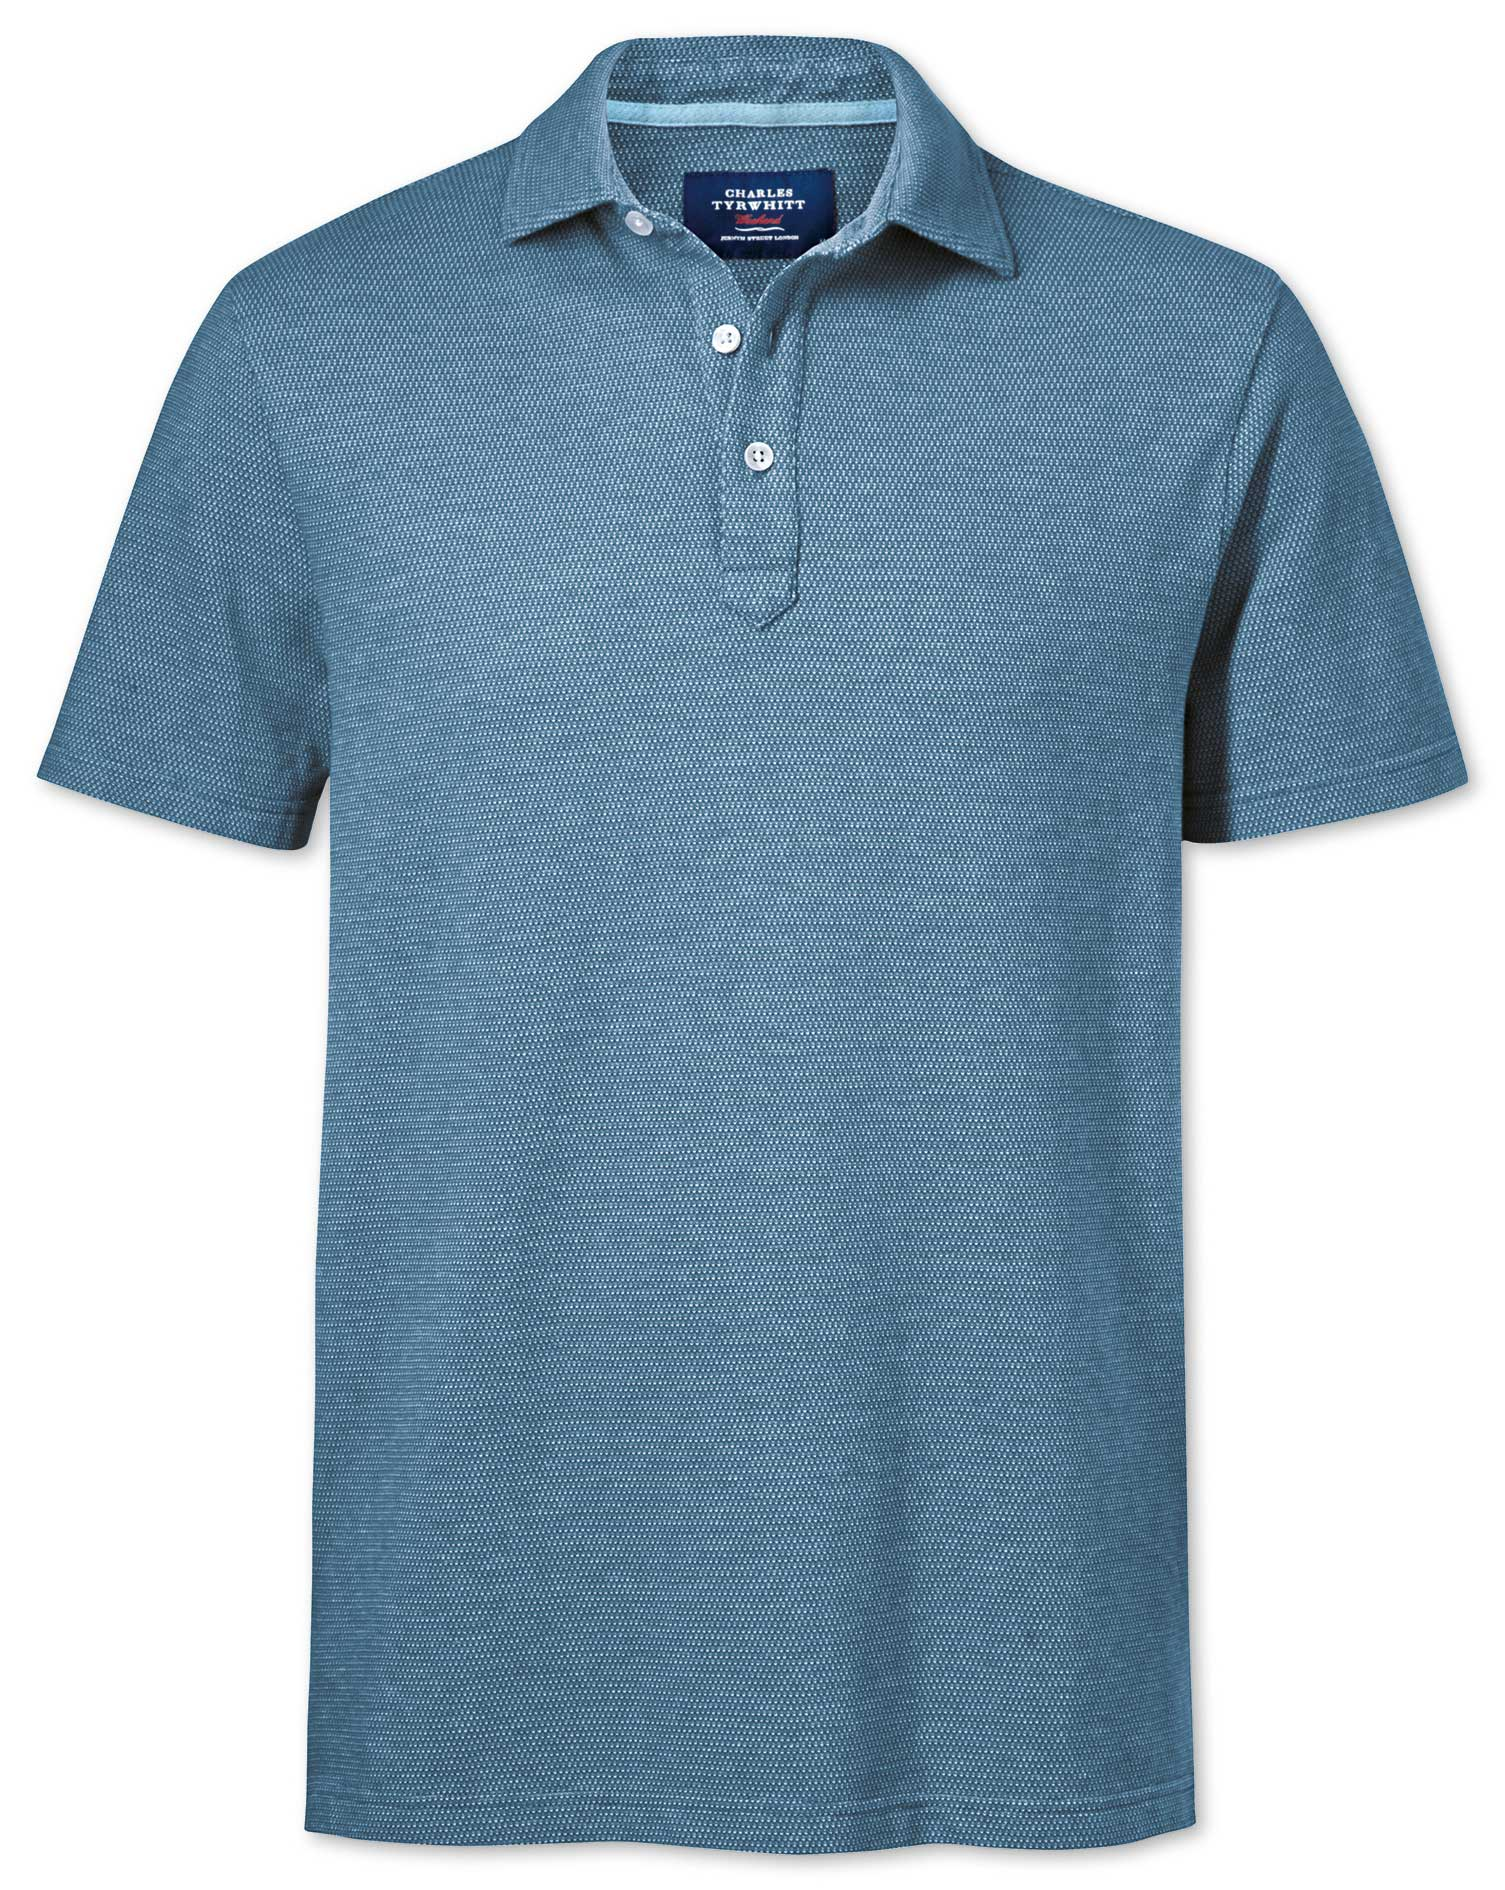 Blue and Sky Blue Birds Eye Cotton Polo Size XS by Charles Tyrwhitt